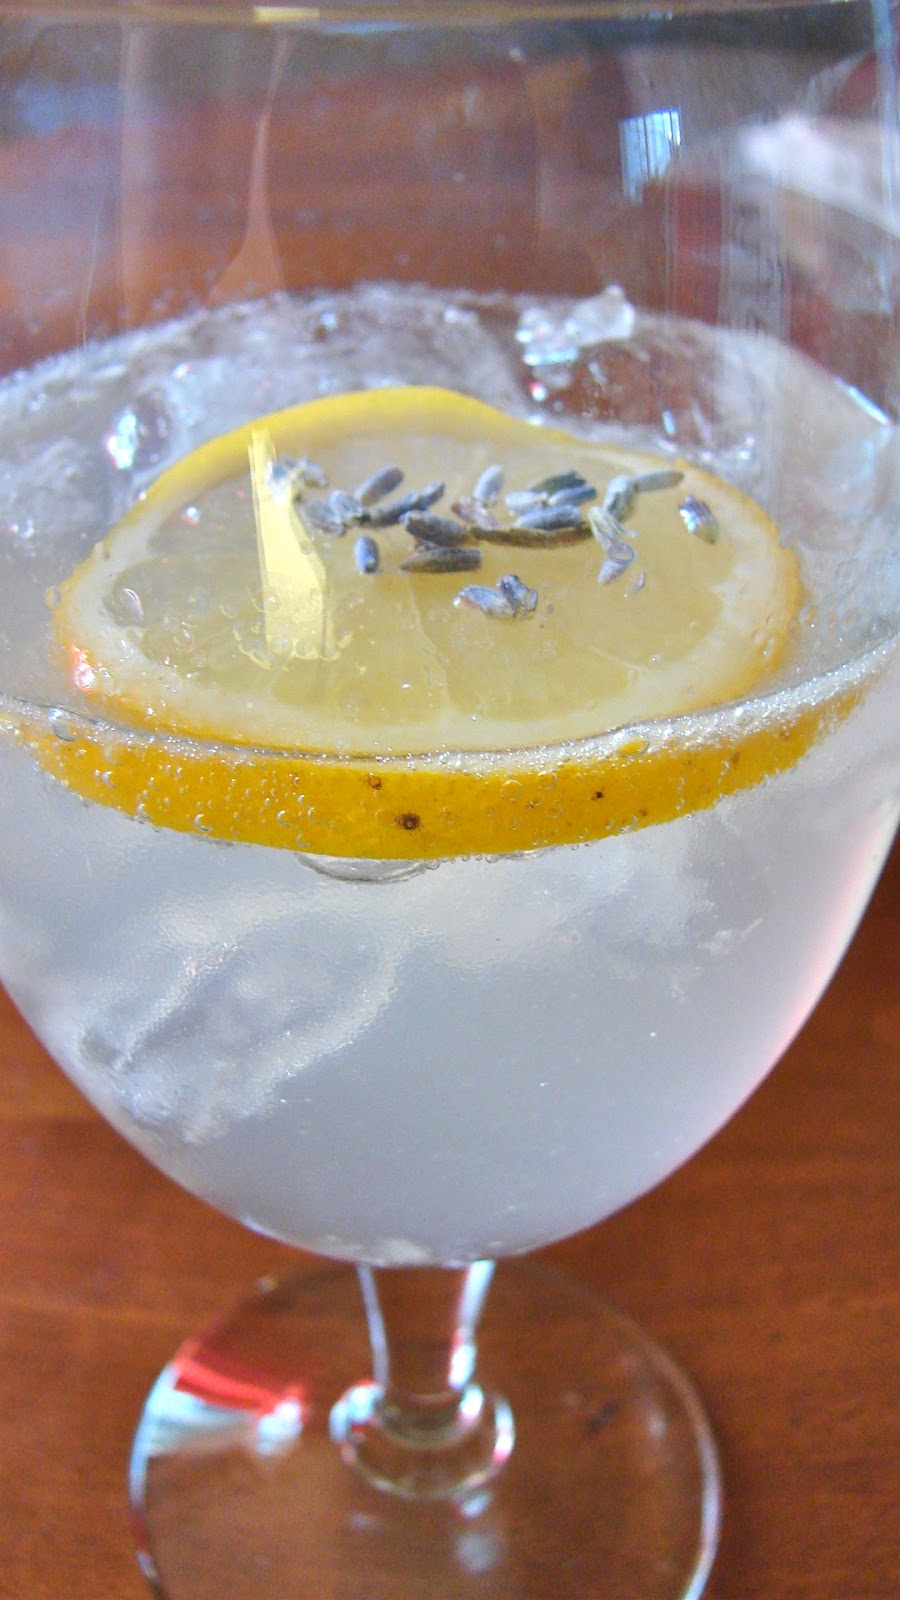 Ashleigh HomeMaker: Lavender Tom Collins